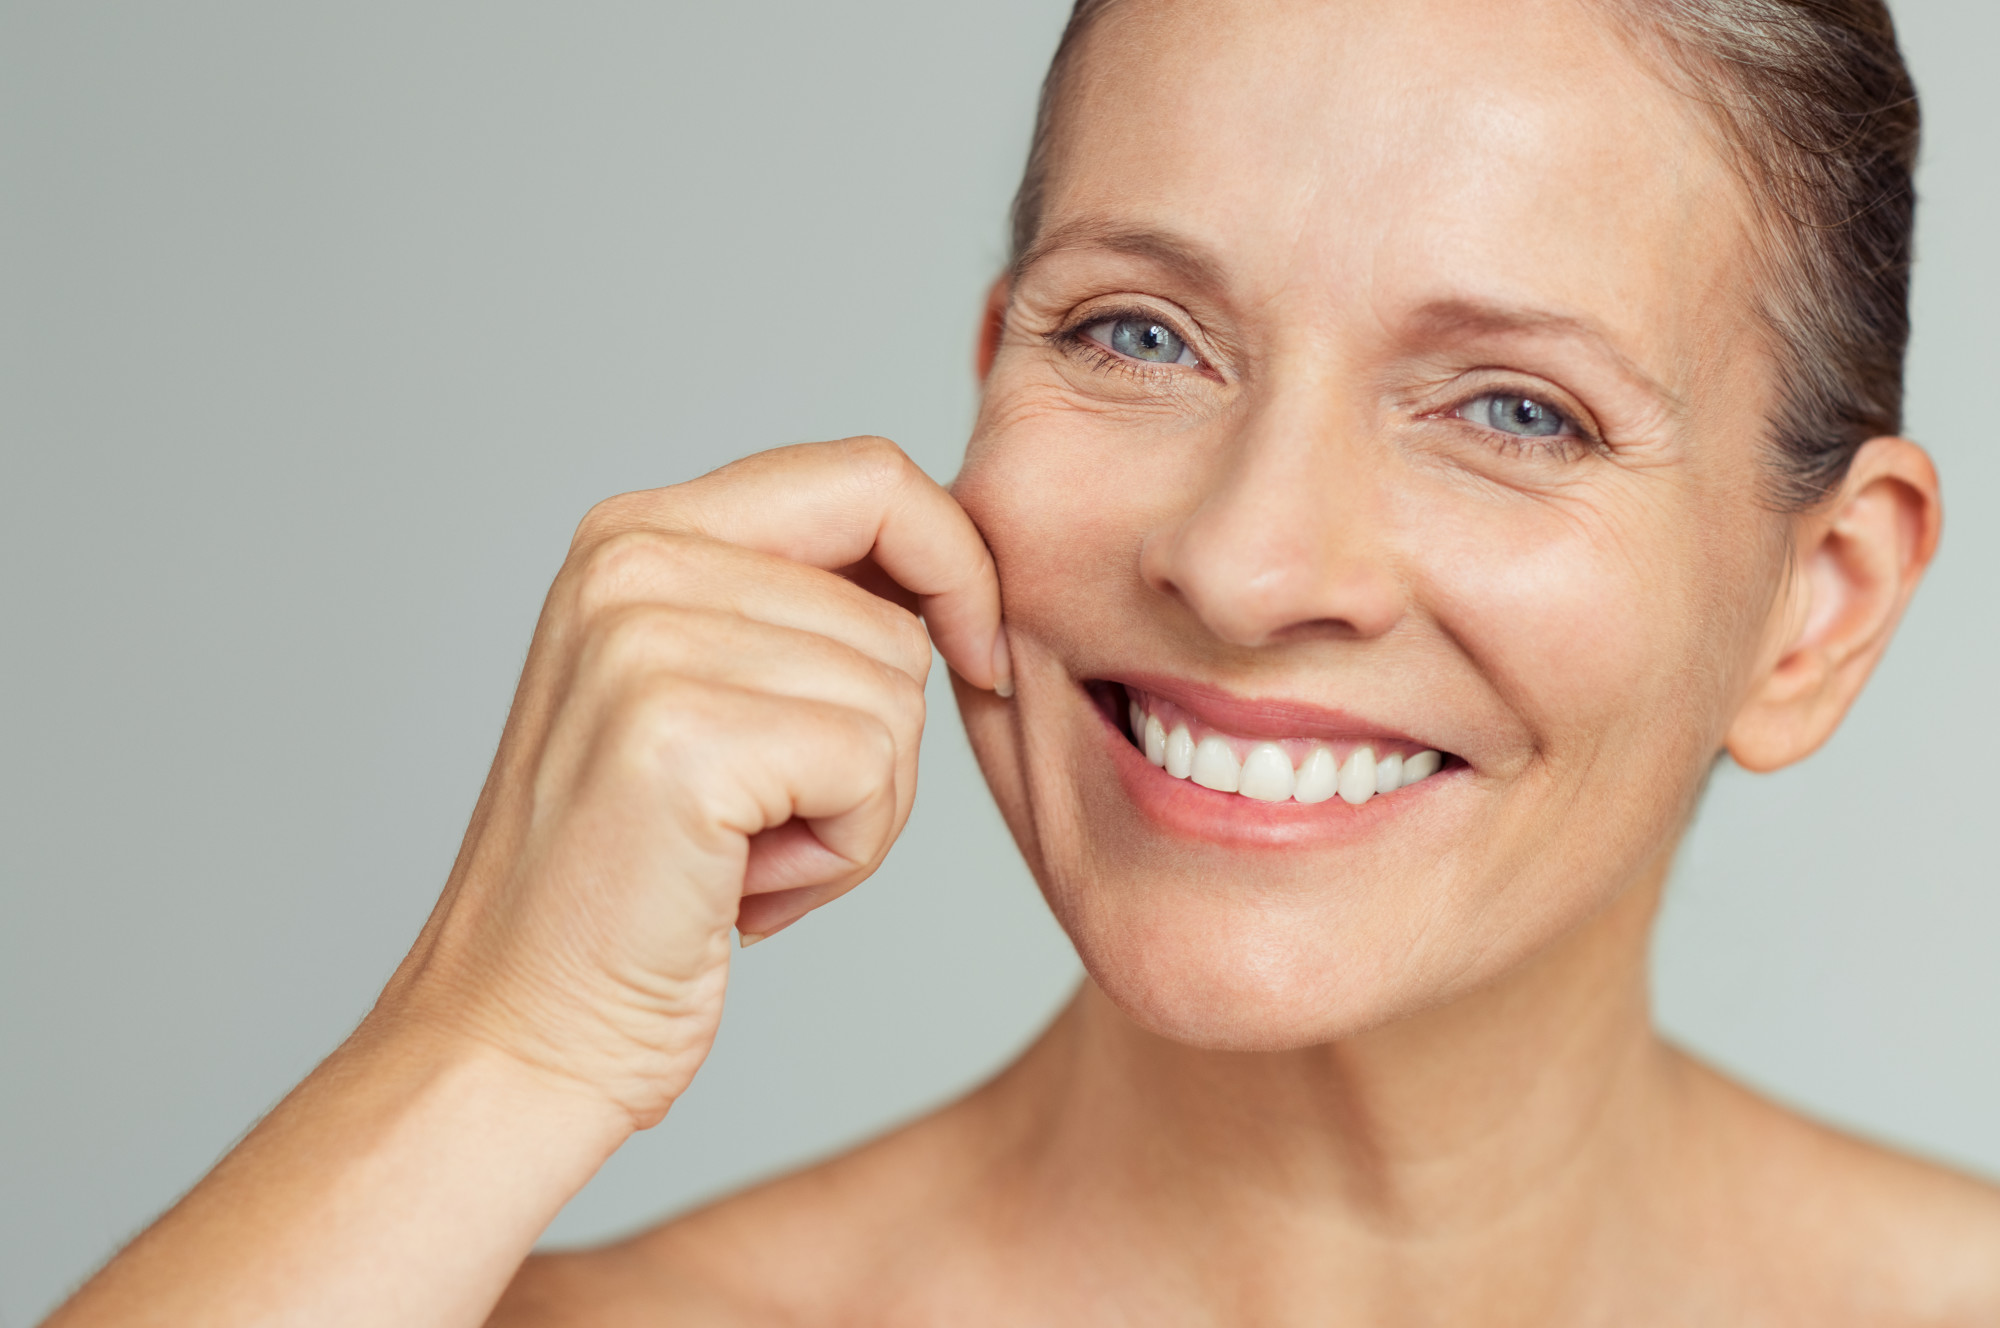 Ways You Can Ensure Your Body and Mind Age Well